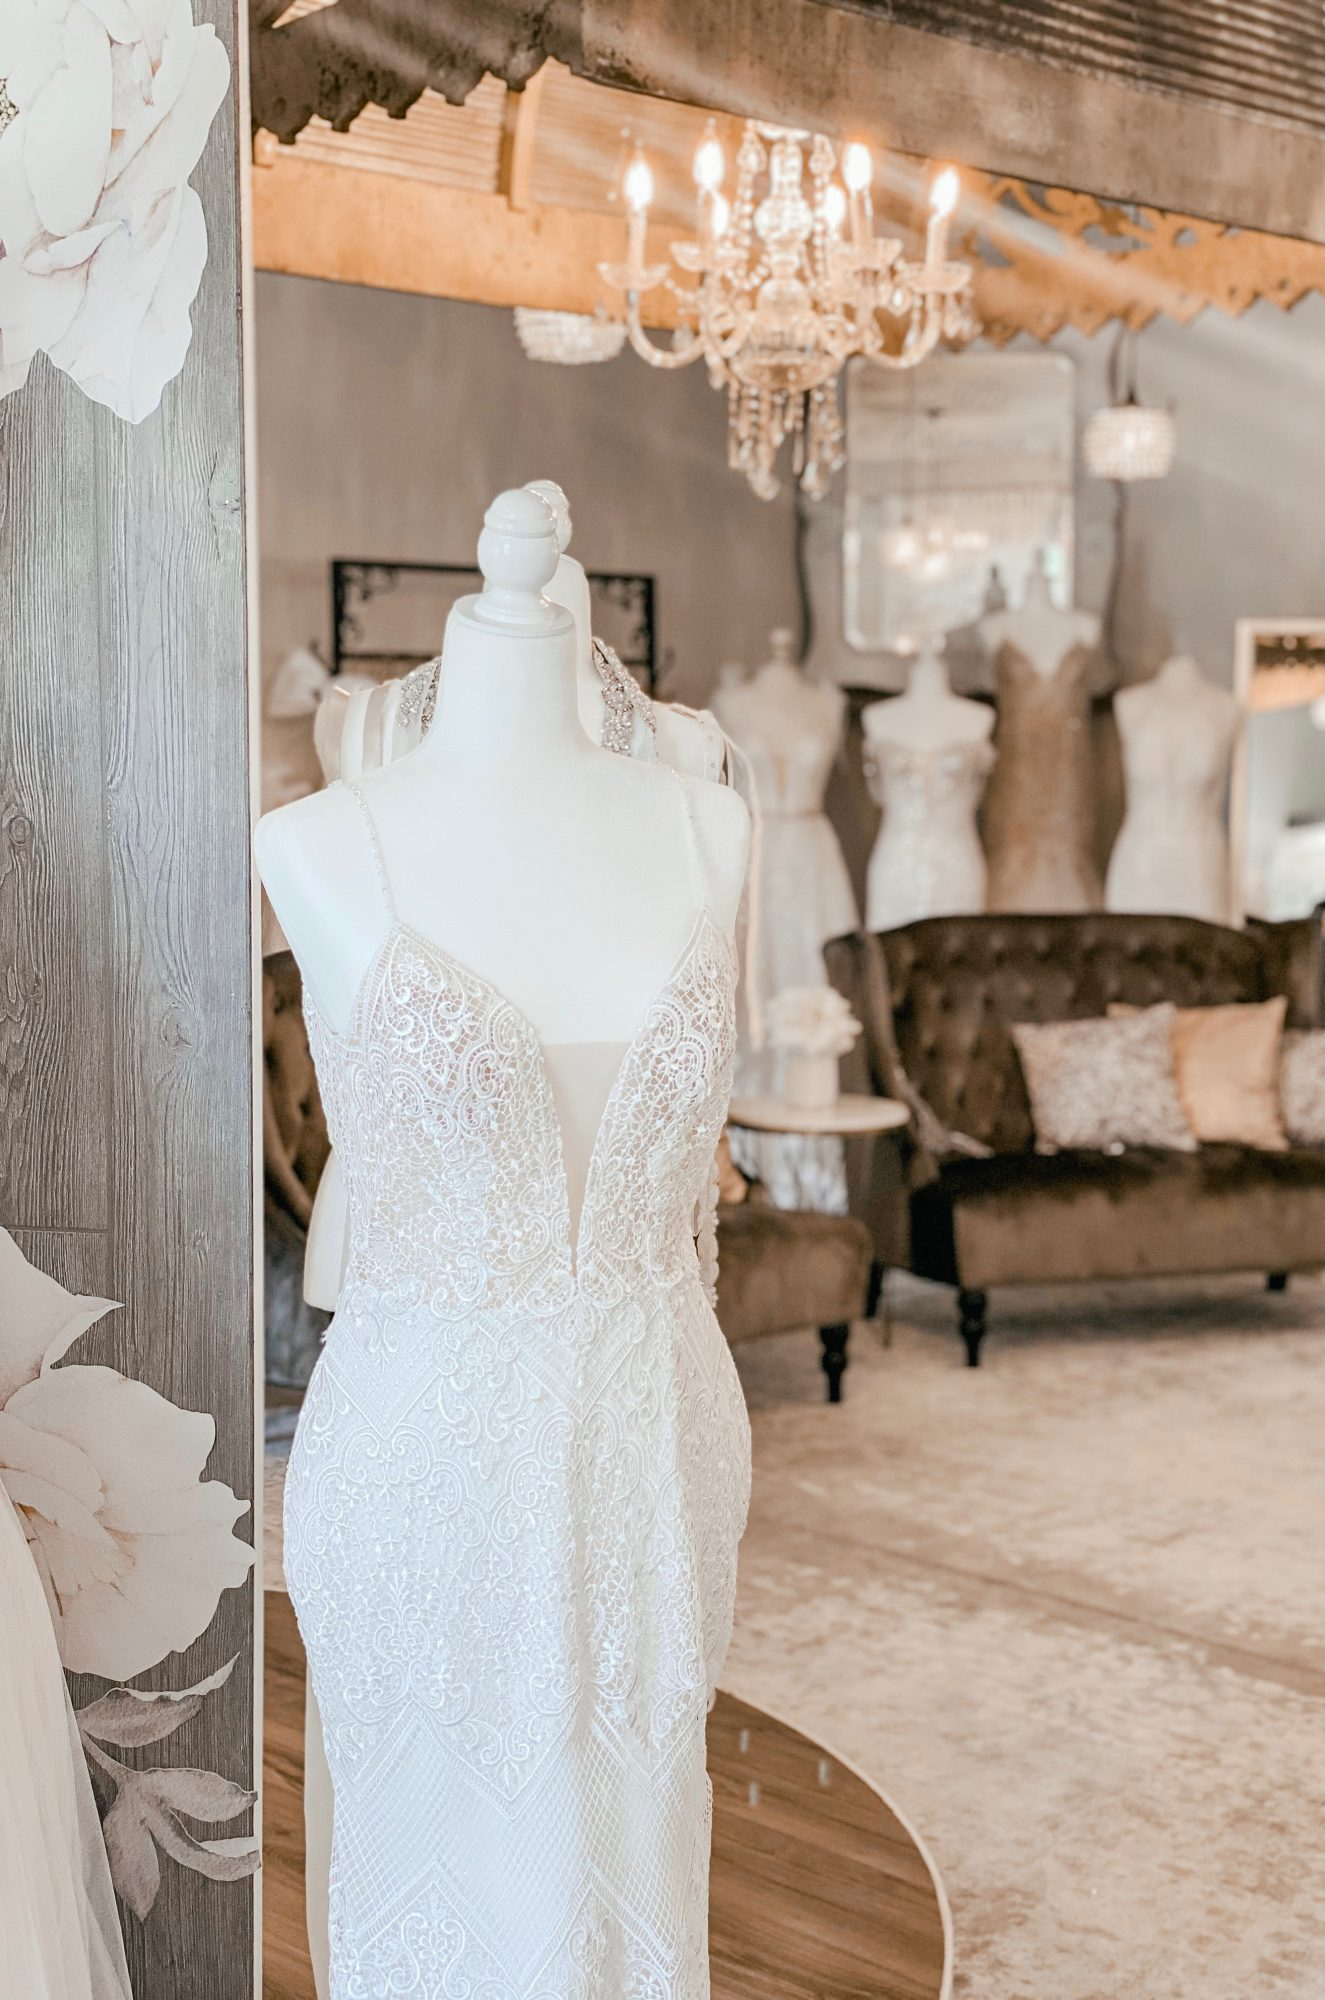 The Wedding Collection - Bay St. Louis - Planning, Bridal Shop, Wedding Venue, Bridal Suite